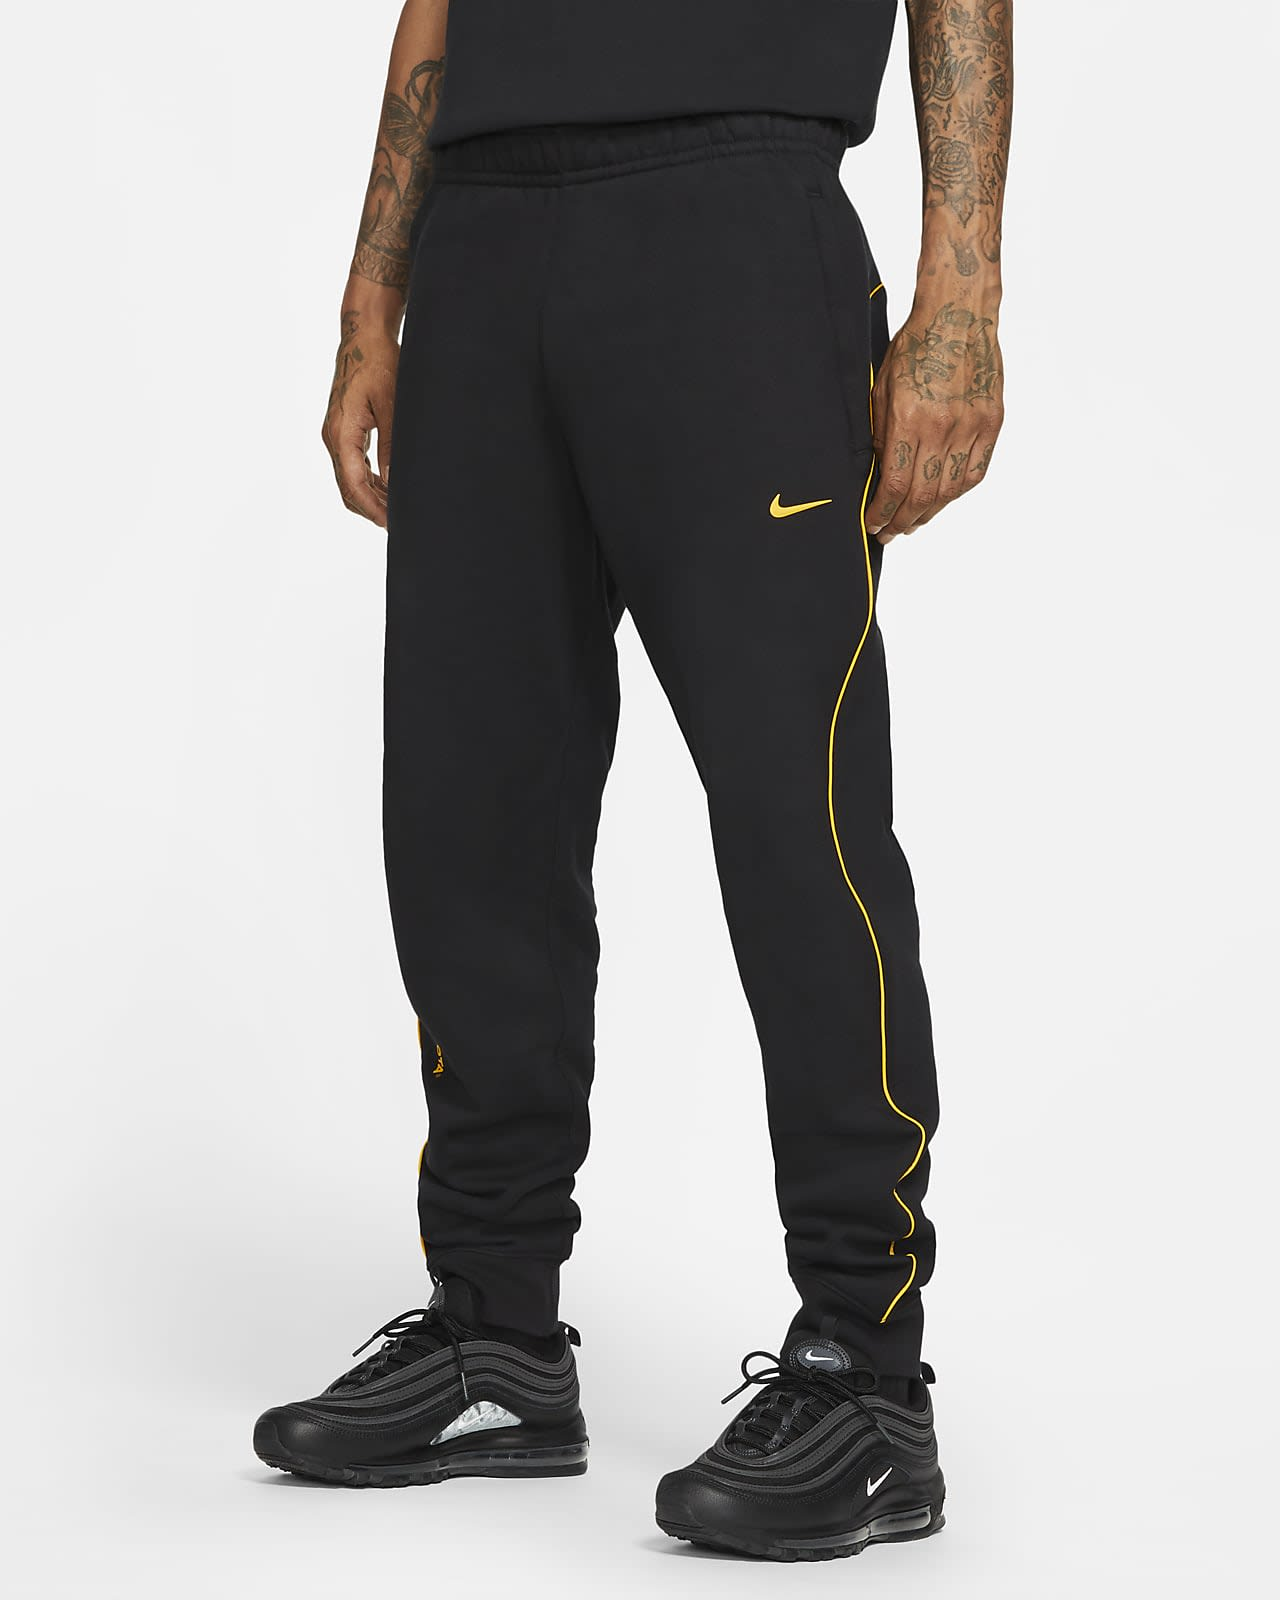 Drake Nike NOCTA Black Fleece Pants